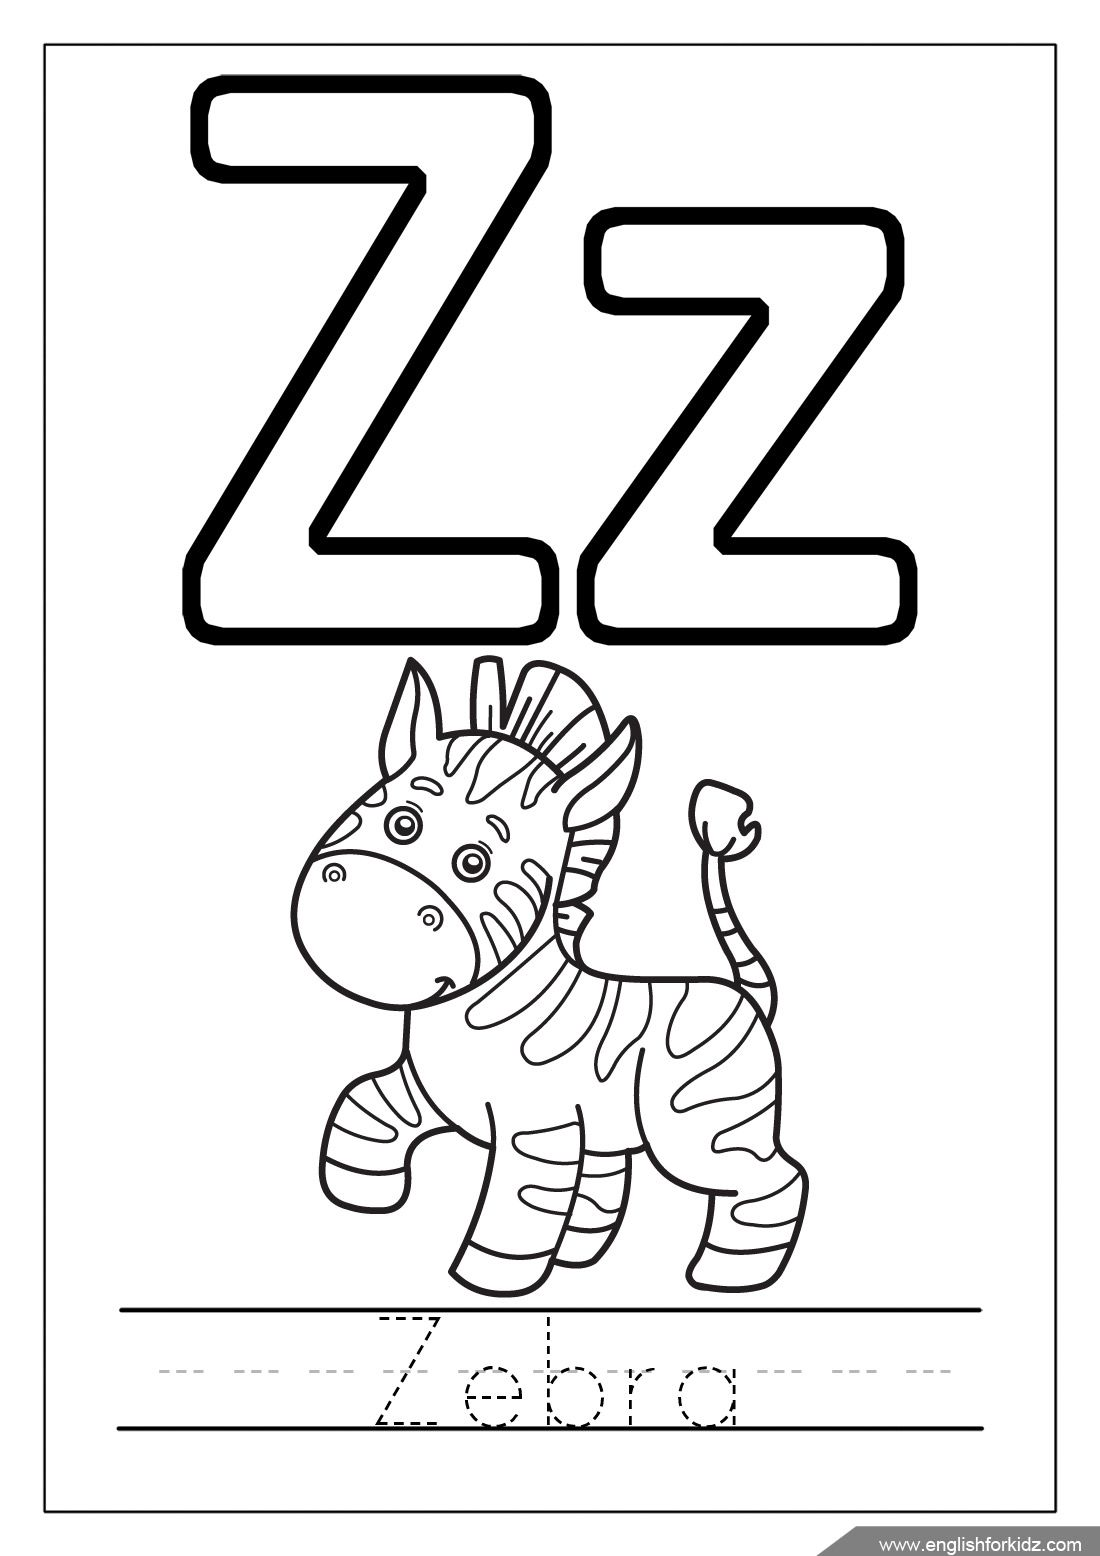 Alphabet Coloring Page Letter Z Zebra English